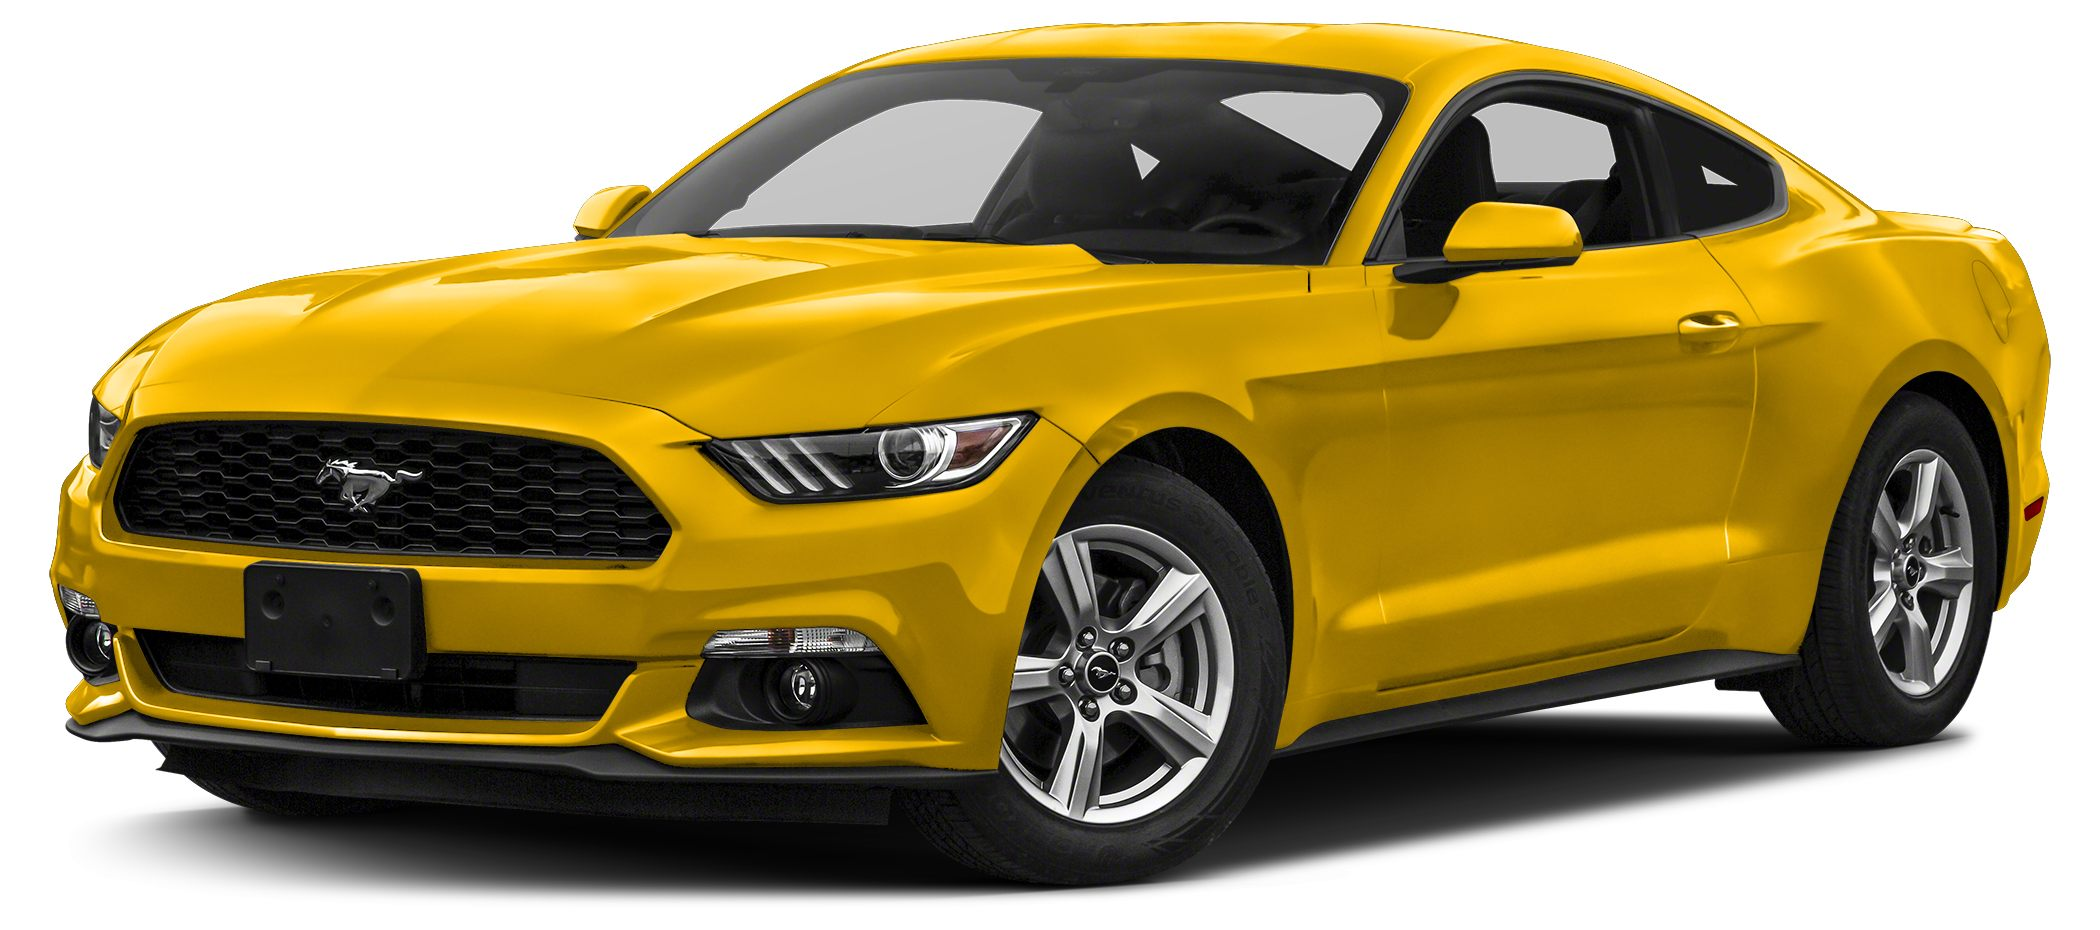 2016 Ford Mustang EcoBoost The Ford Mustang is an American classic that lives on The body has bee